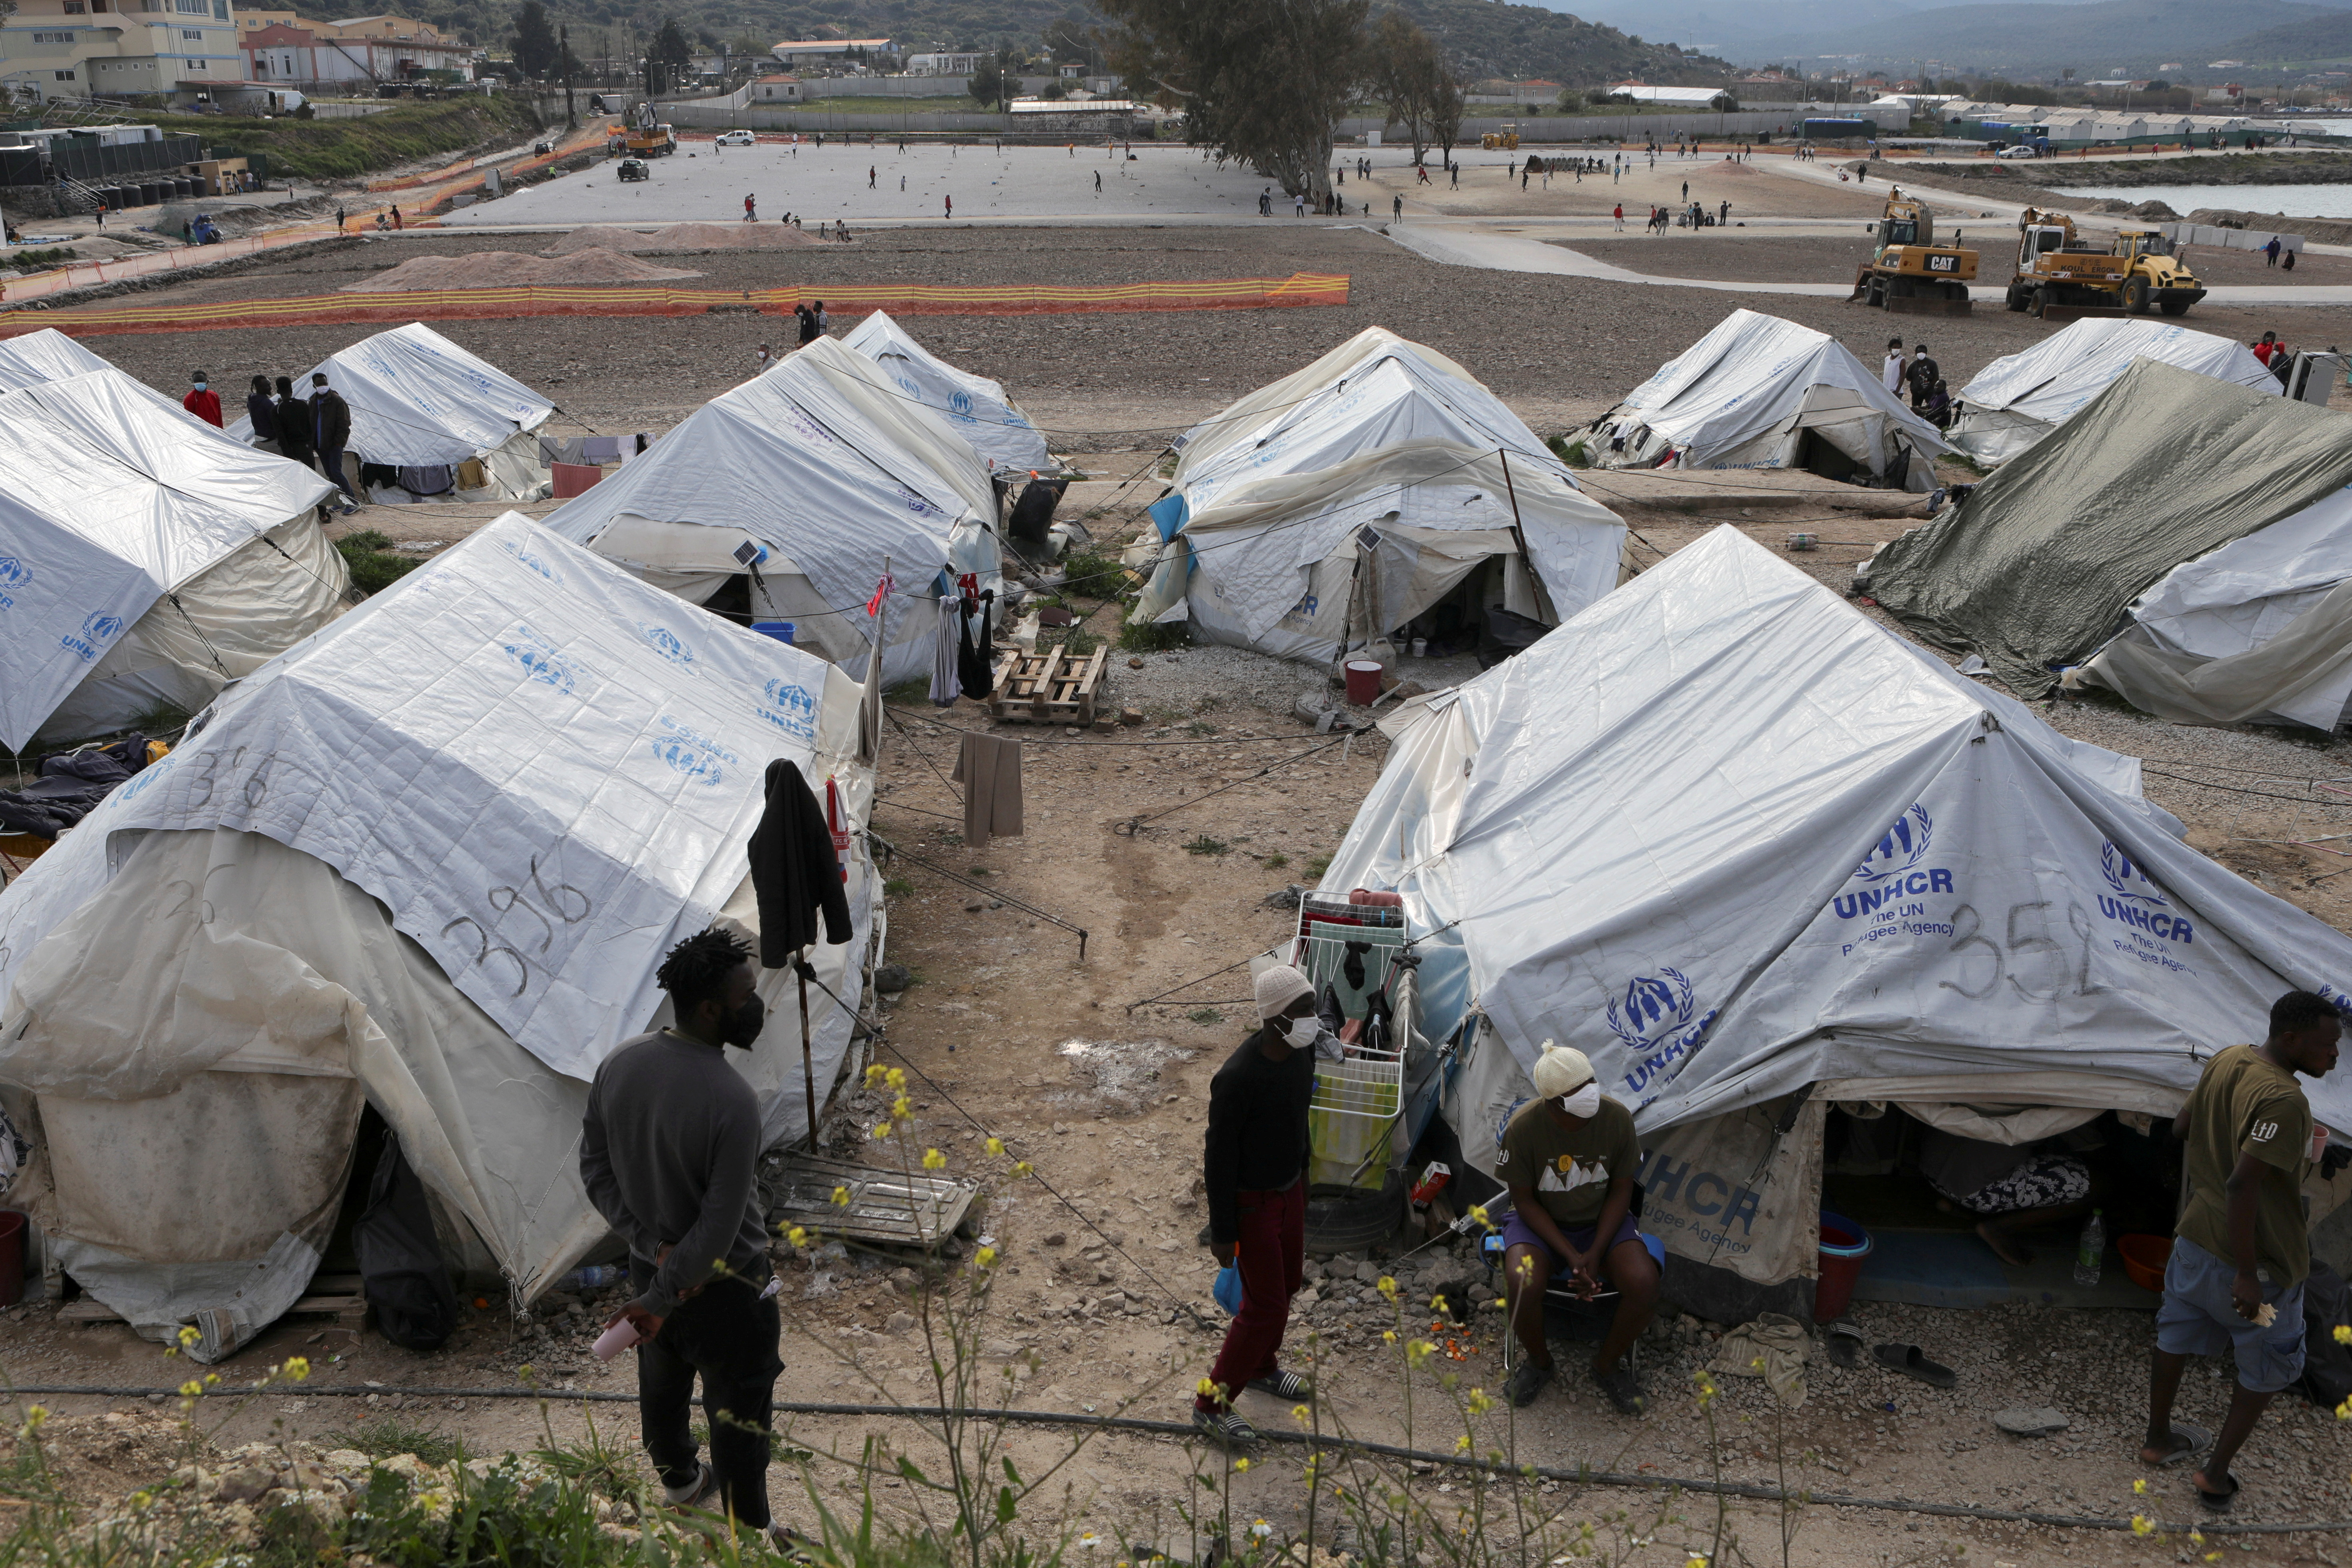 Refugees and migrants stand next to tents in the Mavrovouni camp on the island of Lesbos, Greece, March 29, 2021. REUTERS/Elias Marcou